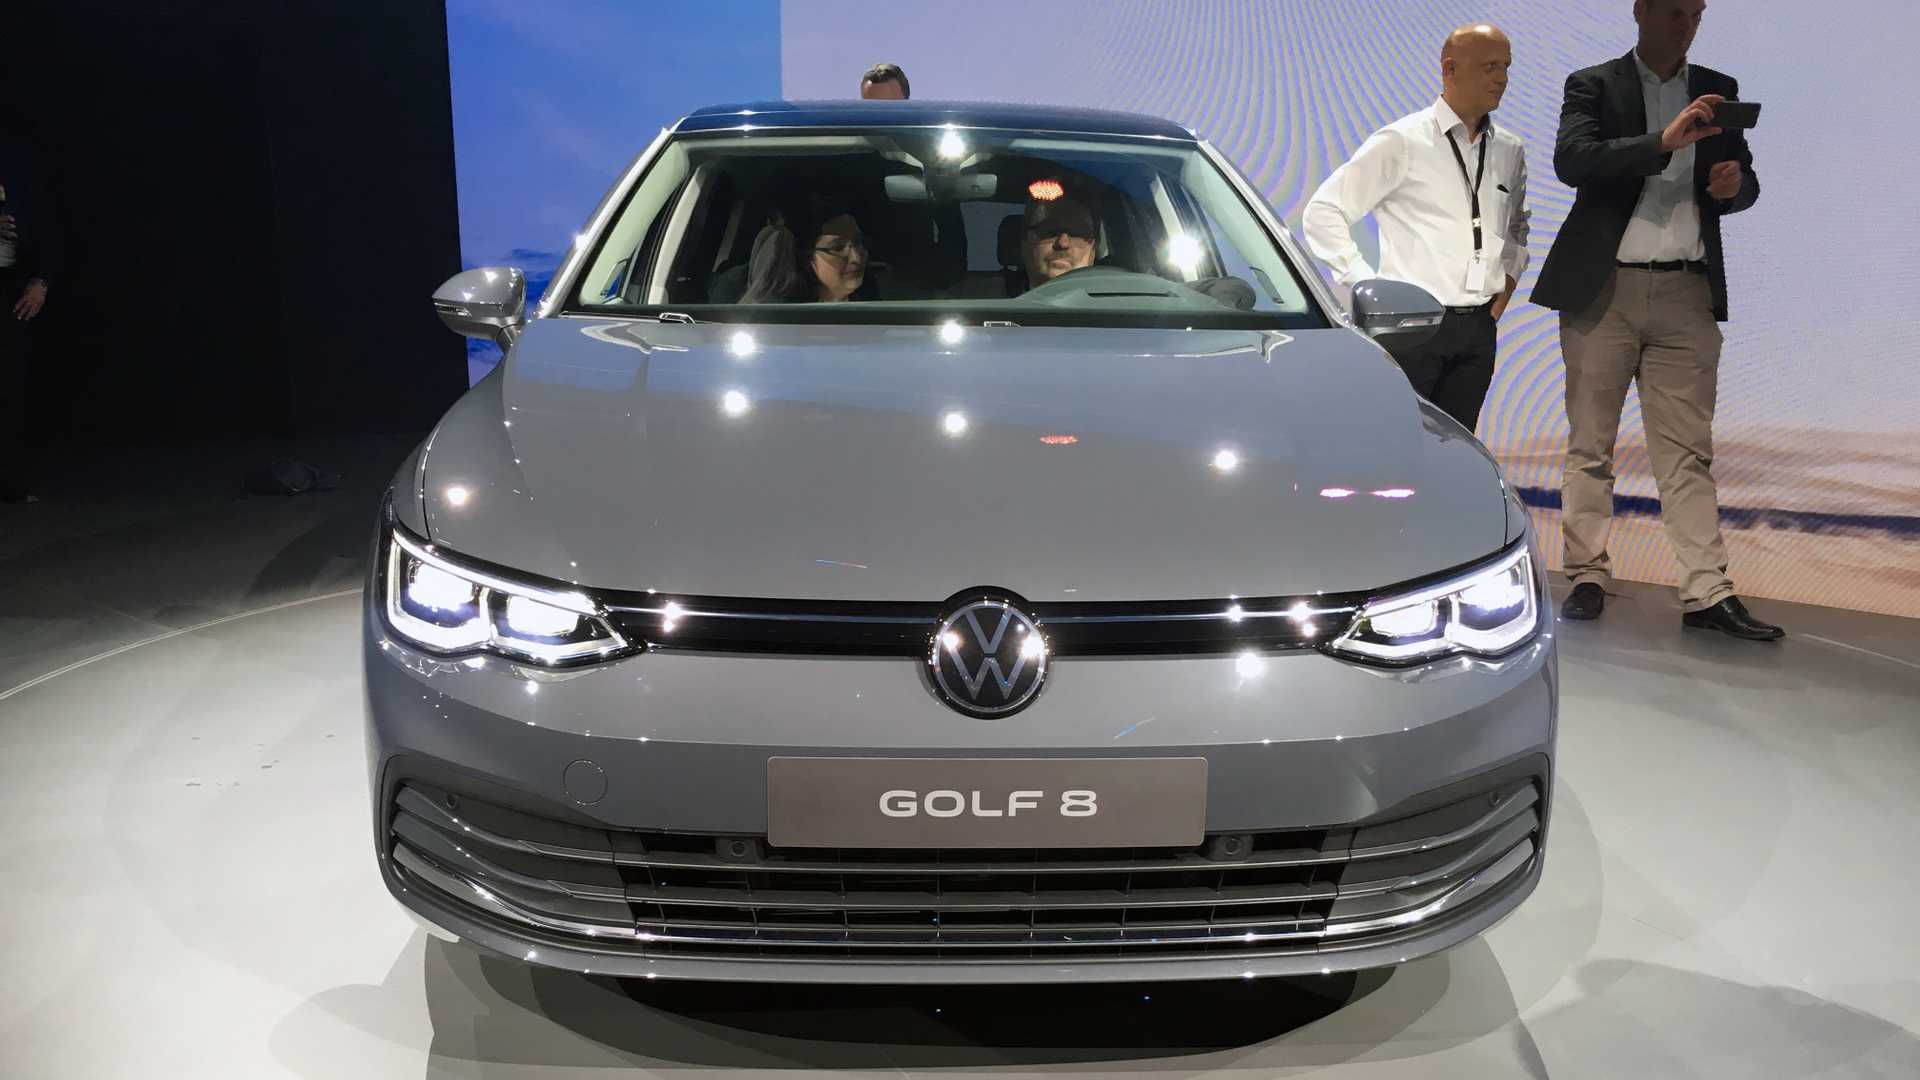 10-emotions-from-vw-golf-8